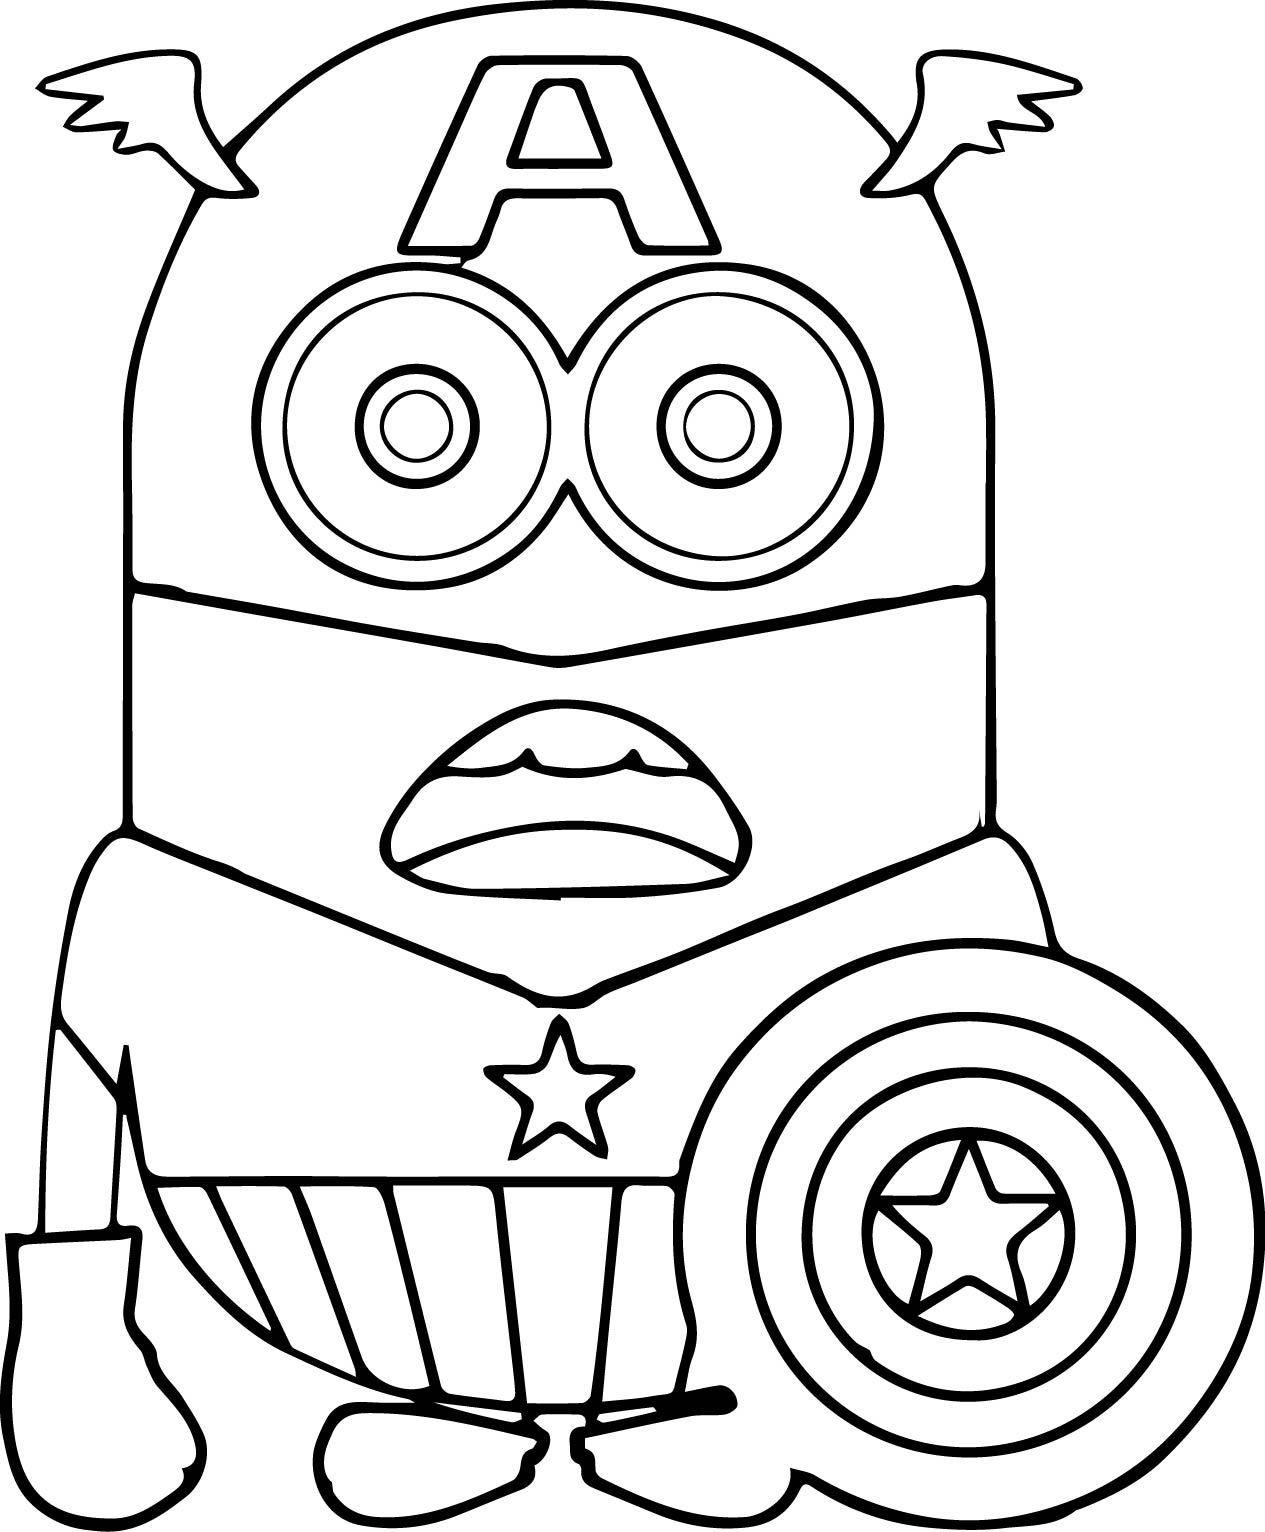 1265x1532 Interesting Minion Coloring Pages Coloring Pages Free Coloring